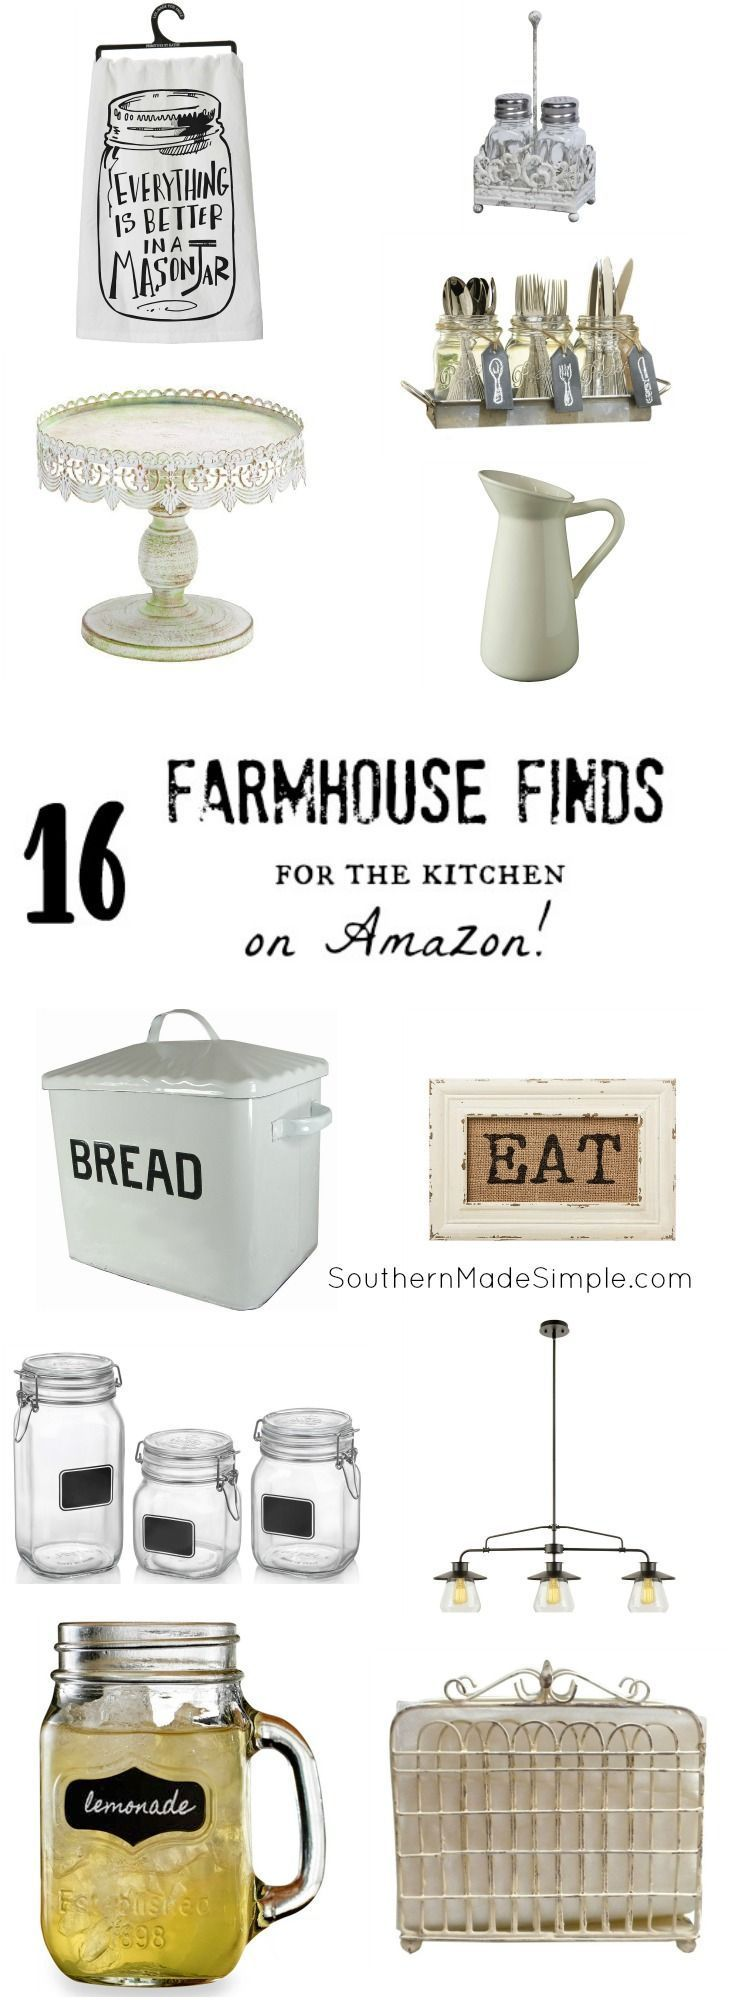 Fixer upper navy kitchen - Farmhouse Finds For The Kitchen On Amazon